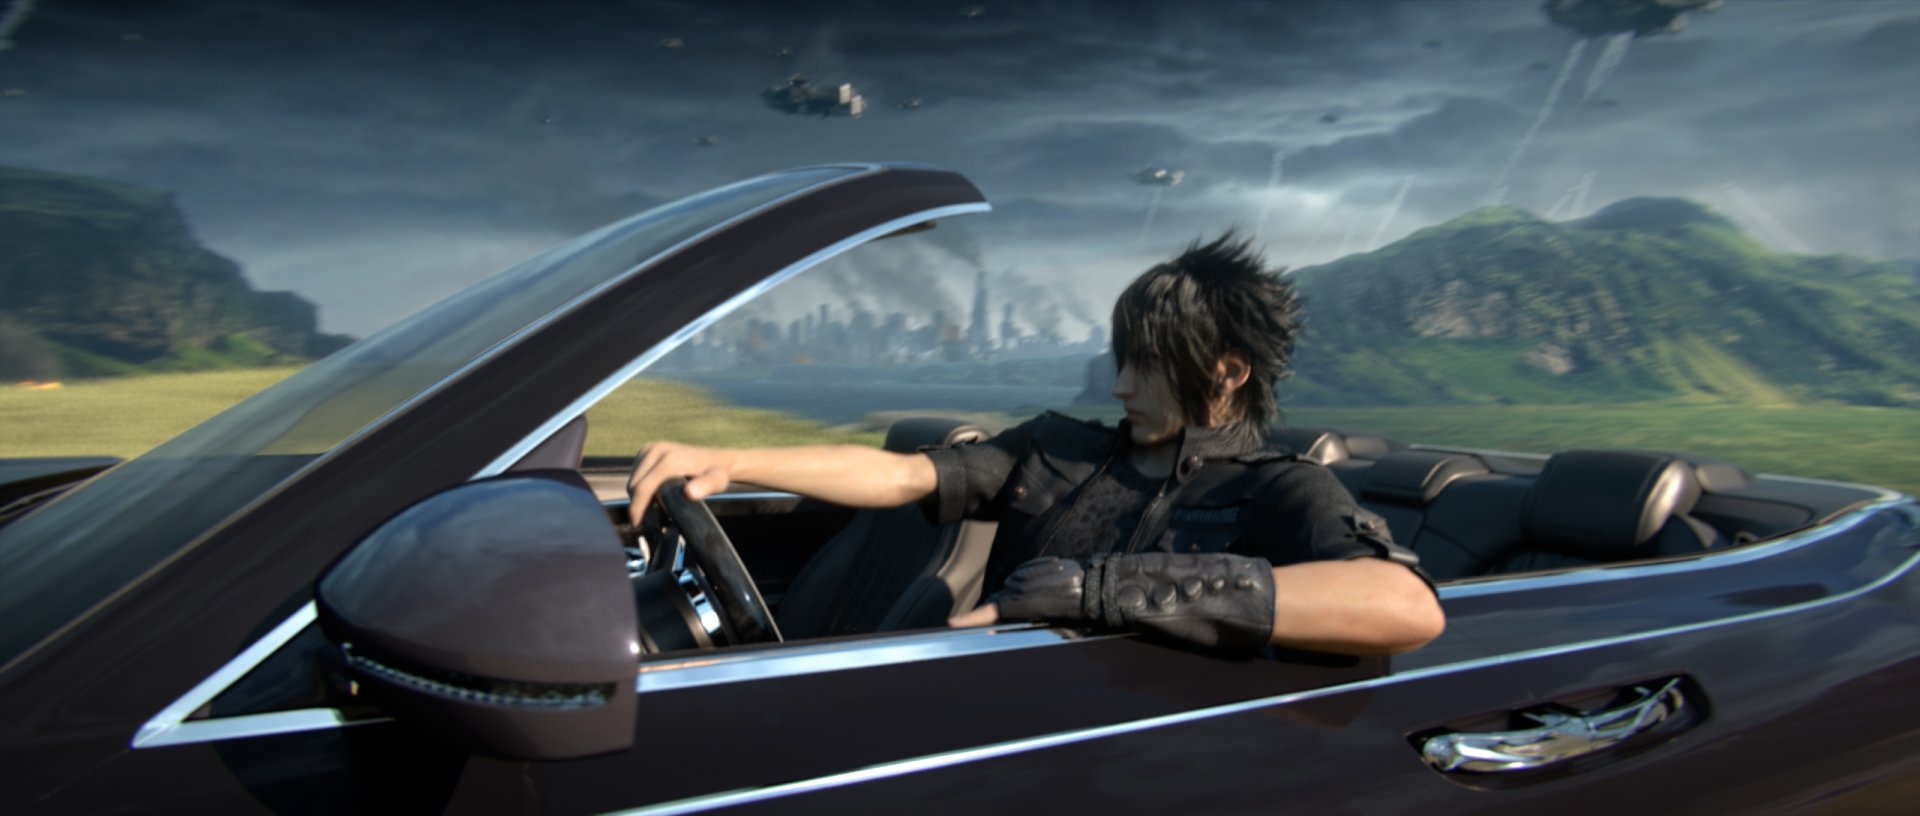 Final Fantasy XV's First Free DLC Pack Drops Next Week Alongside New Game Plus Mode